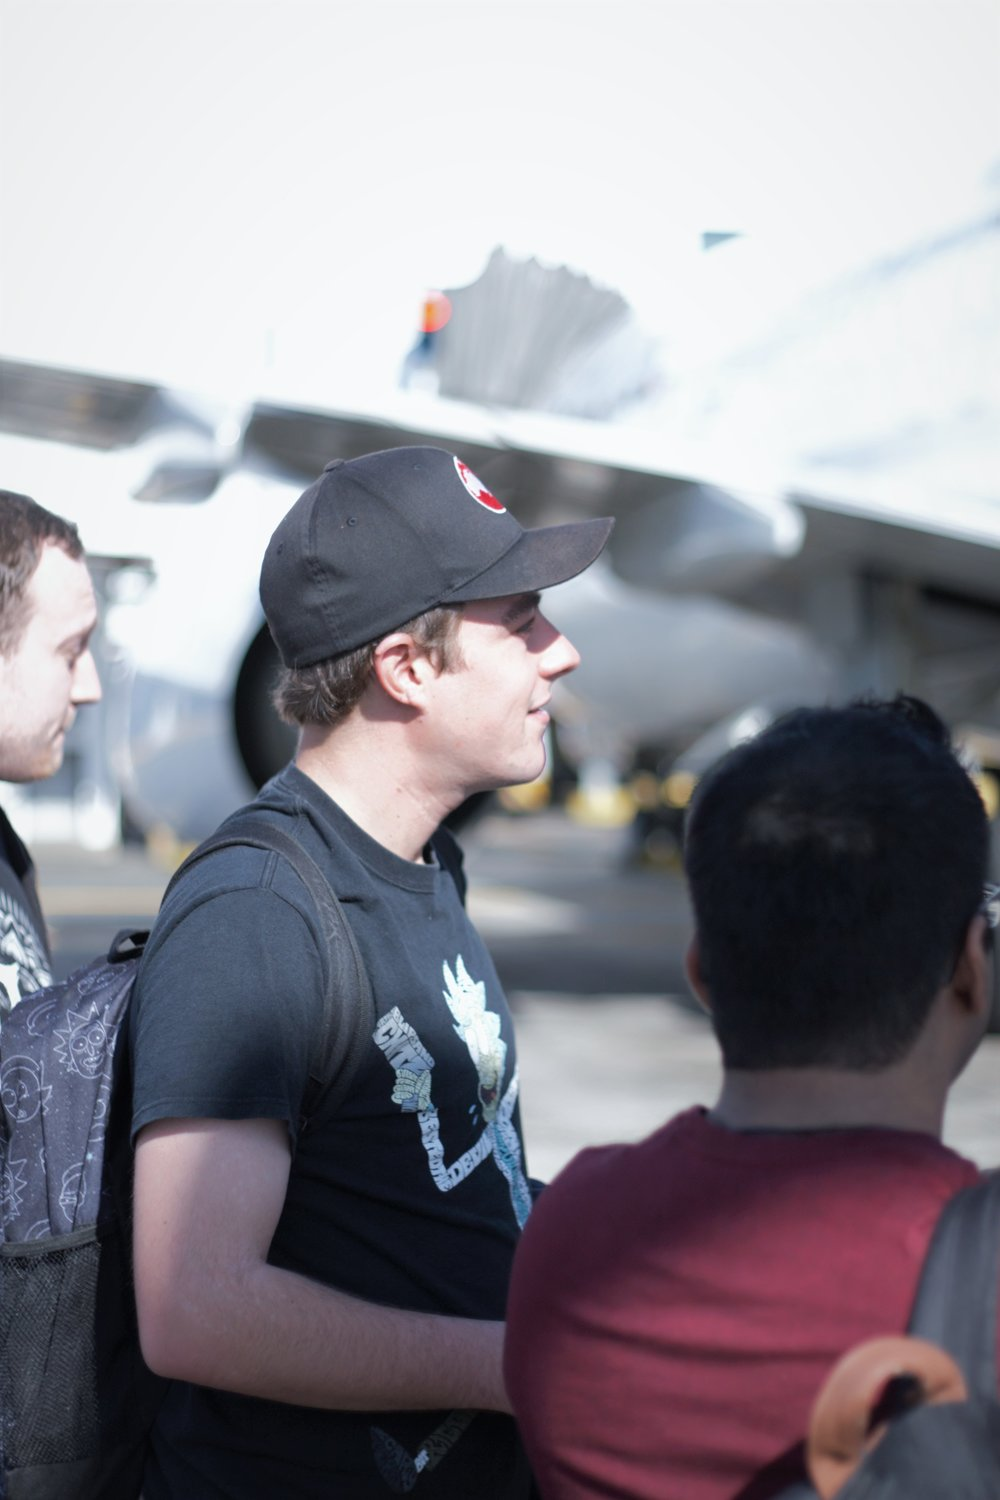 Like Ross boarding the plane like a pro.